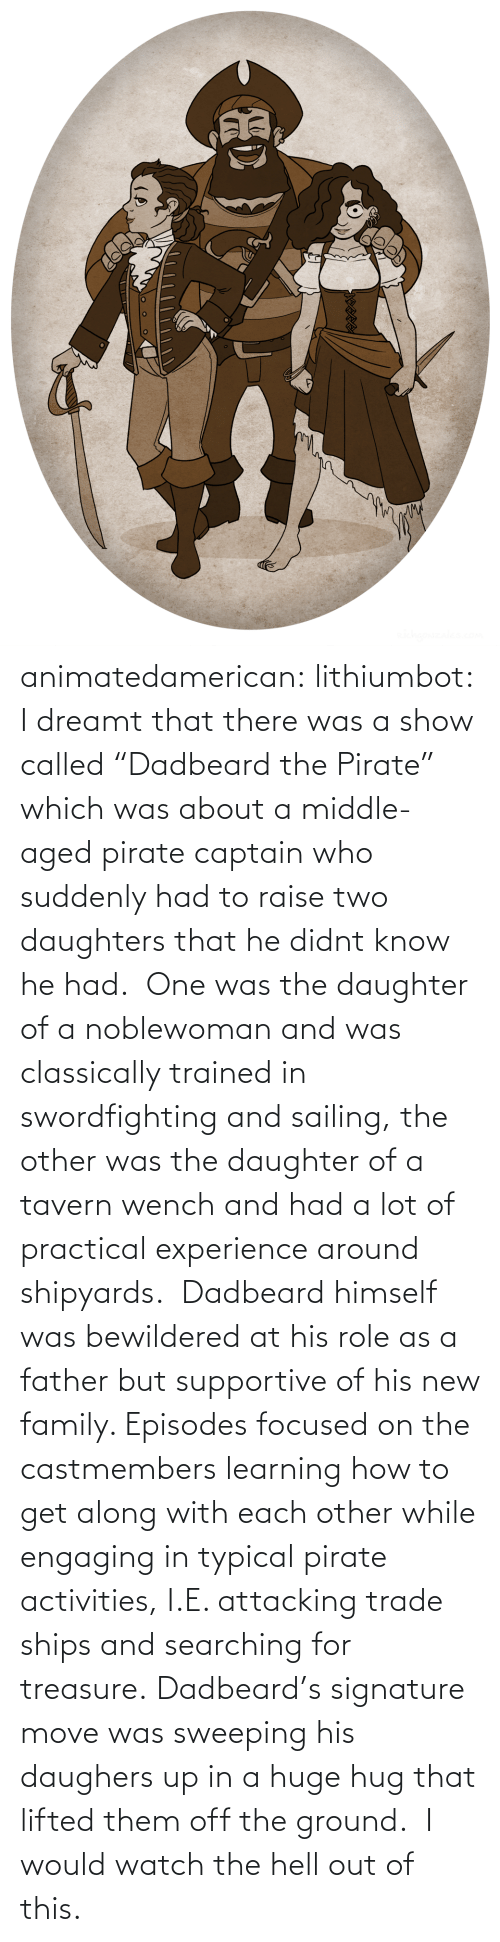 "Pirate: animatedamerican: lithiumbot:  I dreamt that there was a show called ""Dadbeard the Pirate"" which was about a middle-aged pirate captain who suddenly had to raise two daughters that he didnt know he had.  One was the daughter of a noblewoman and was classically trained in swordfighting and sailing, the other was the daughter of a tavern wench and had a lot of practical experience around shipyards.  Dadbeard himself was bewildered at his role as a father but supportive of his new family. Episodes focused on the castmembers learning how to get along with each other while engaging in typical pirate activities, I.E. attacking trade ships and searching for treasure. Dadbeard's signature move was sweeping his daughers up in a huge hug that lifted them off the ground.   I would watch the hell out of this."